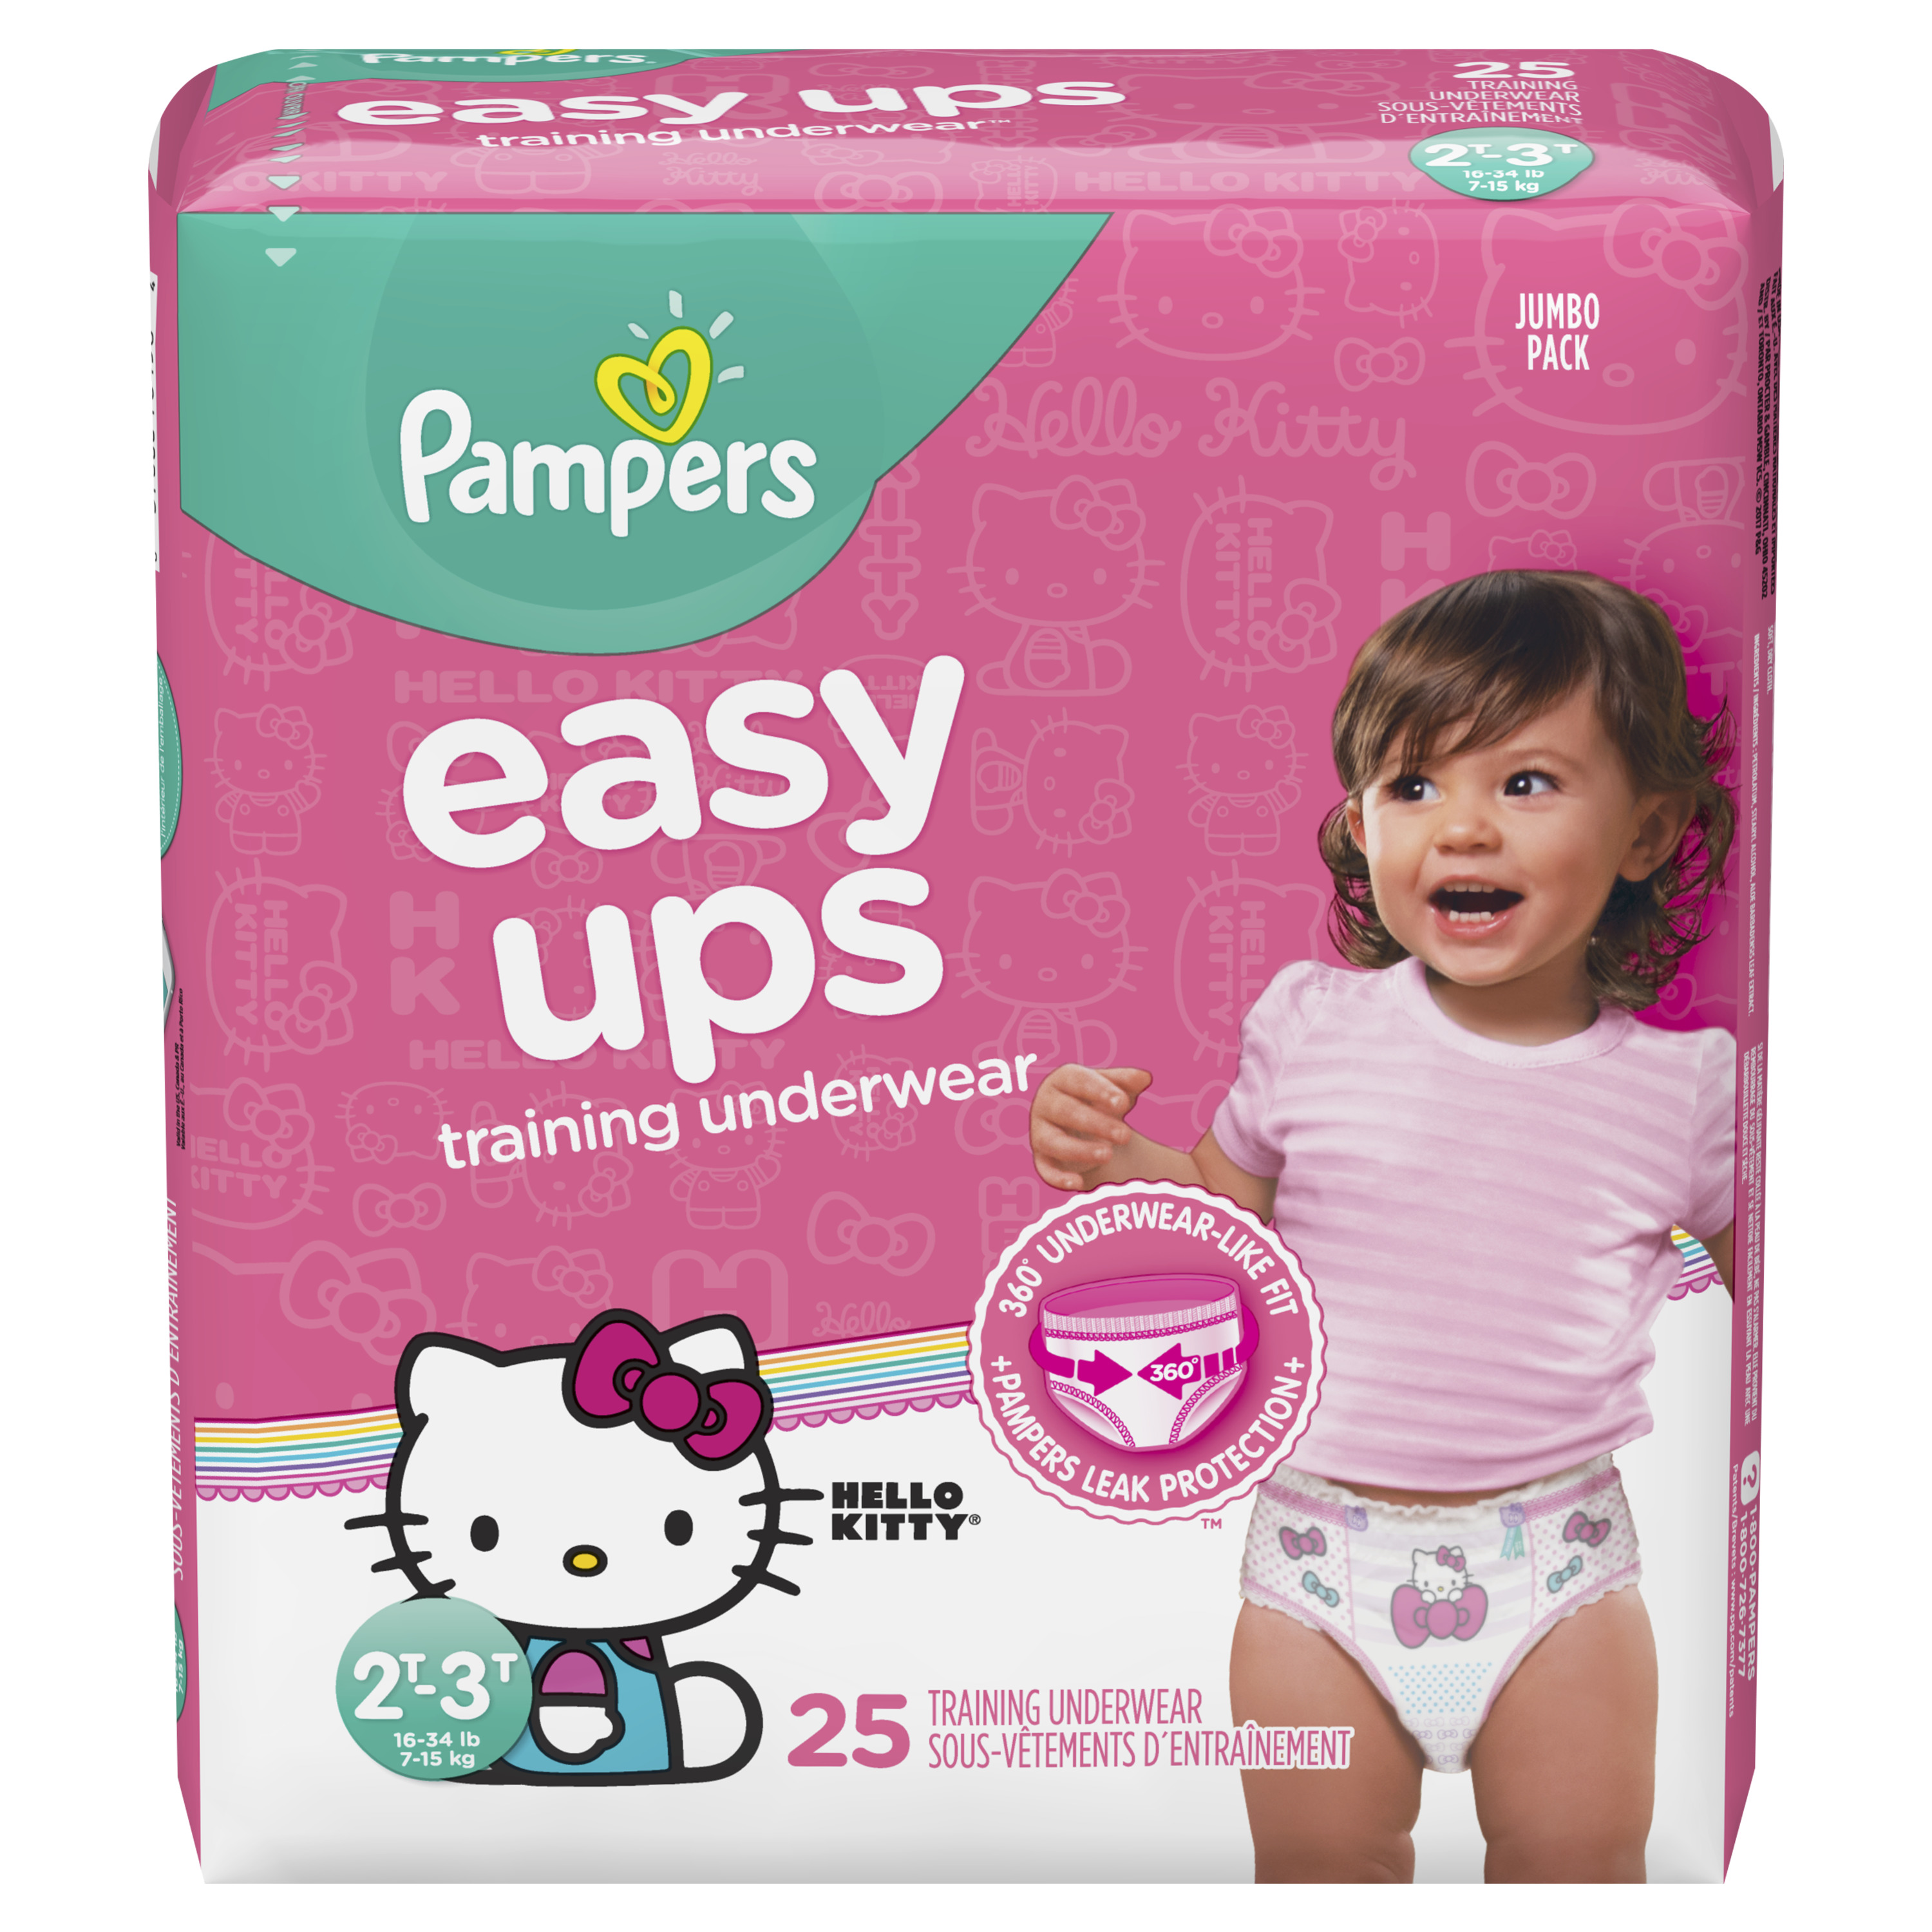 Pampers Easy Ups Training Underwear Girls Size 4 2T-3T 25 Count